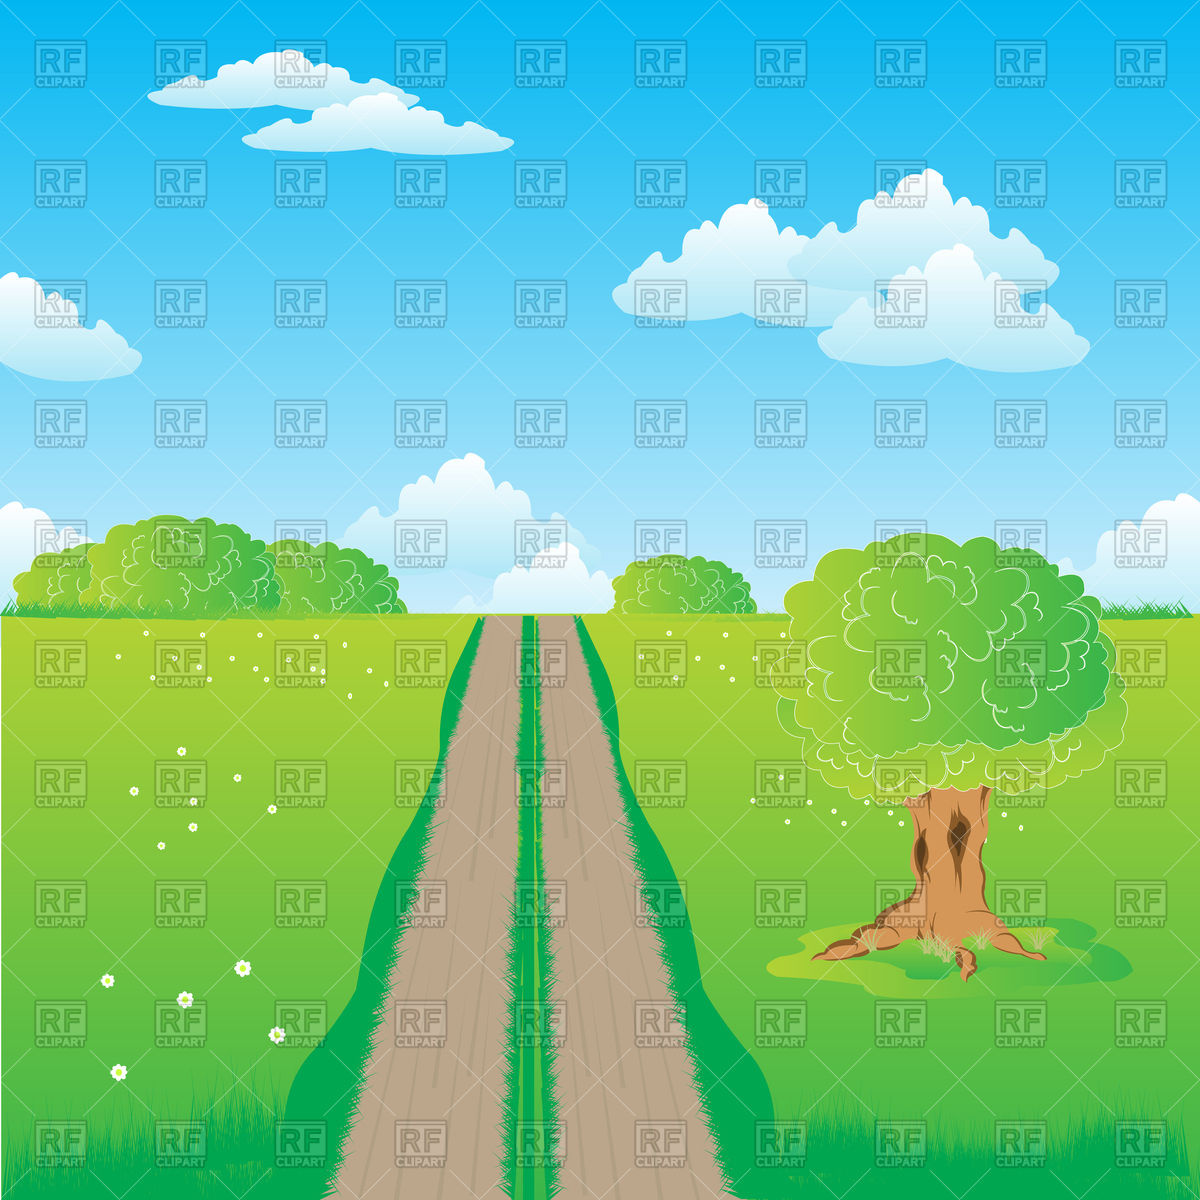 Rural road in field with flower Vector Image #91974.